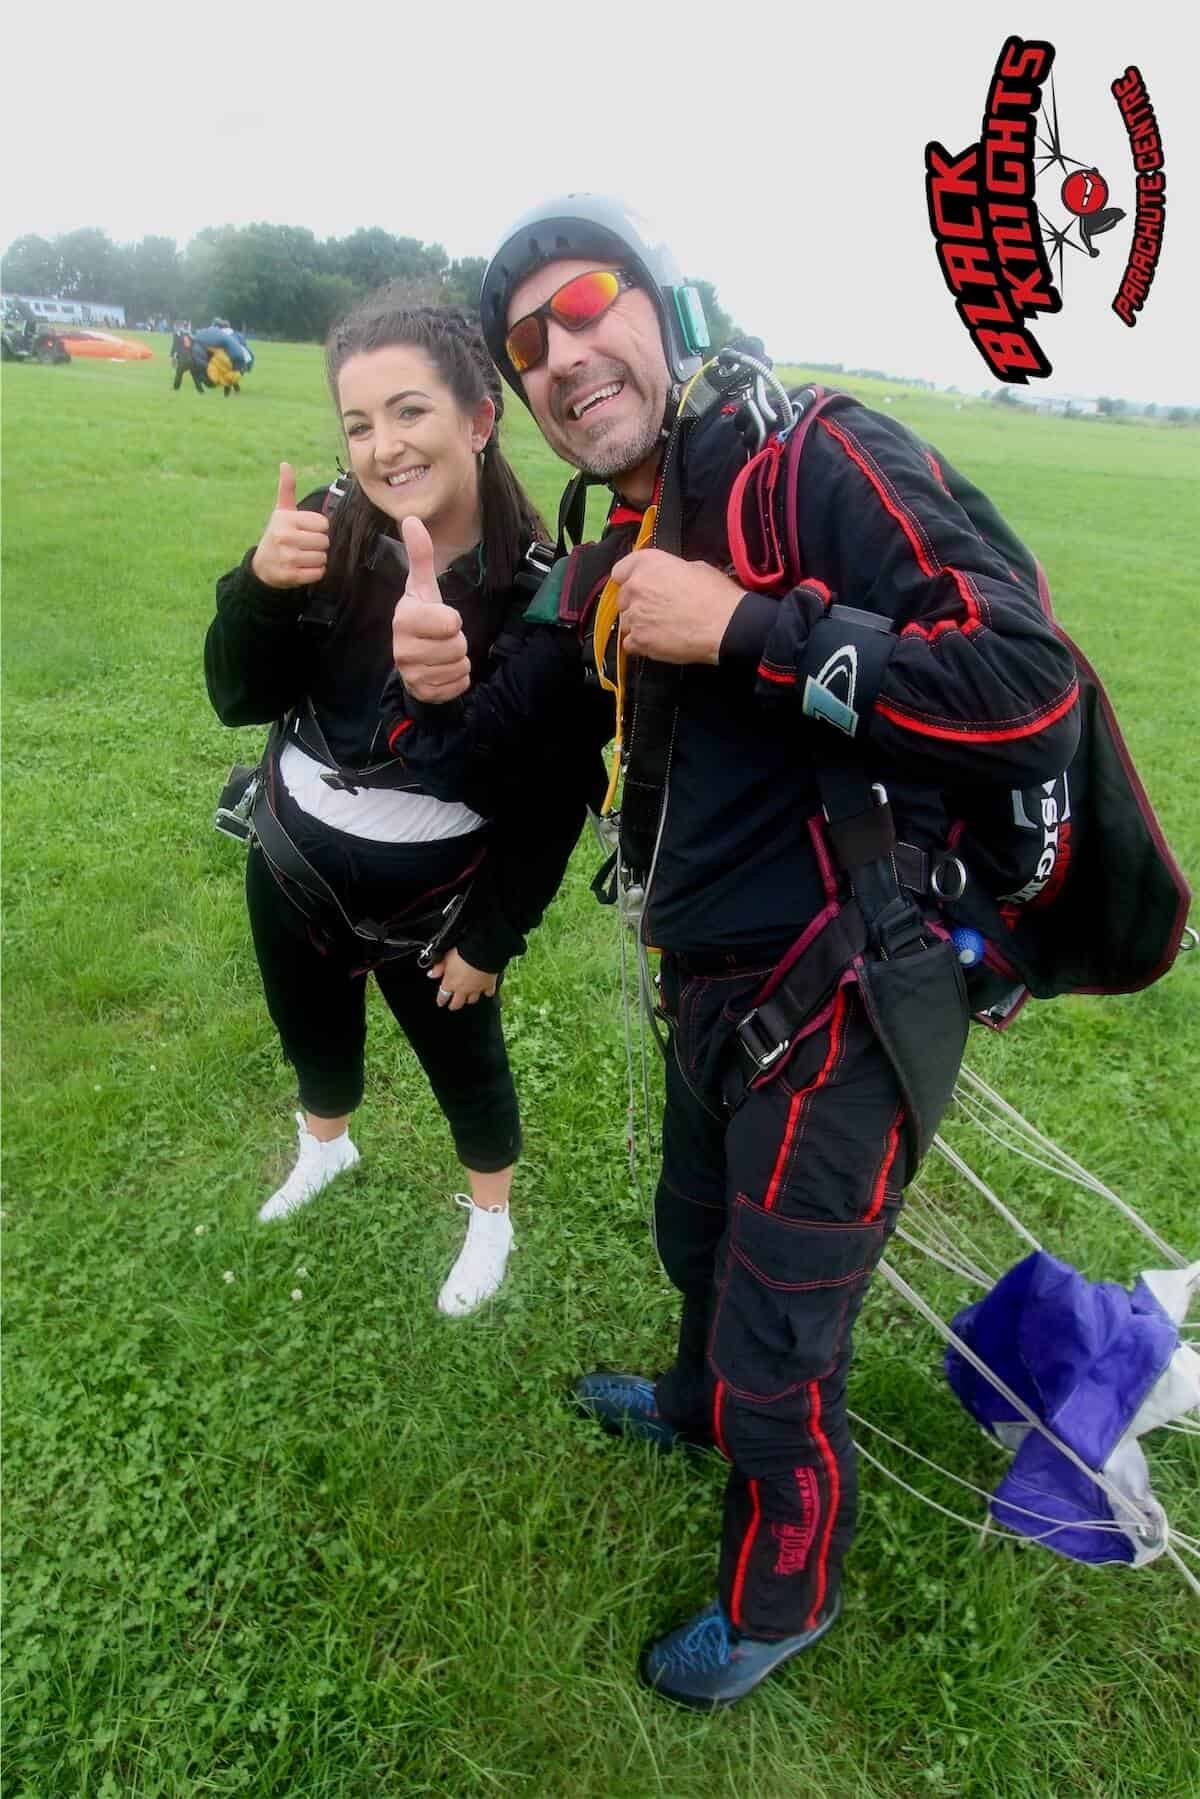 Back on the ground safe and sound for Megan Swanick on the Kimpton Skydive